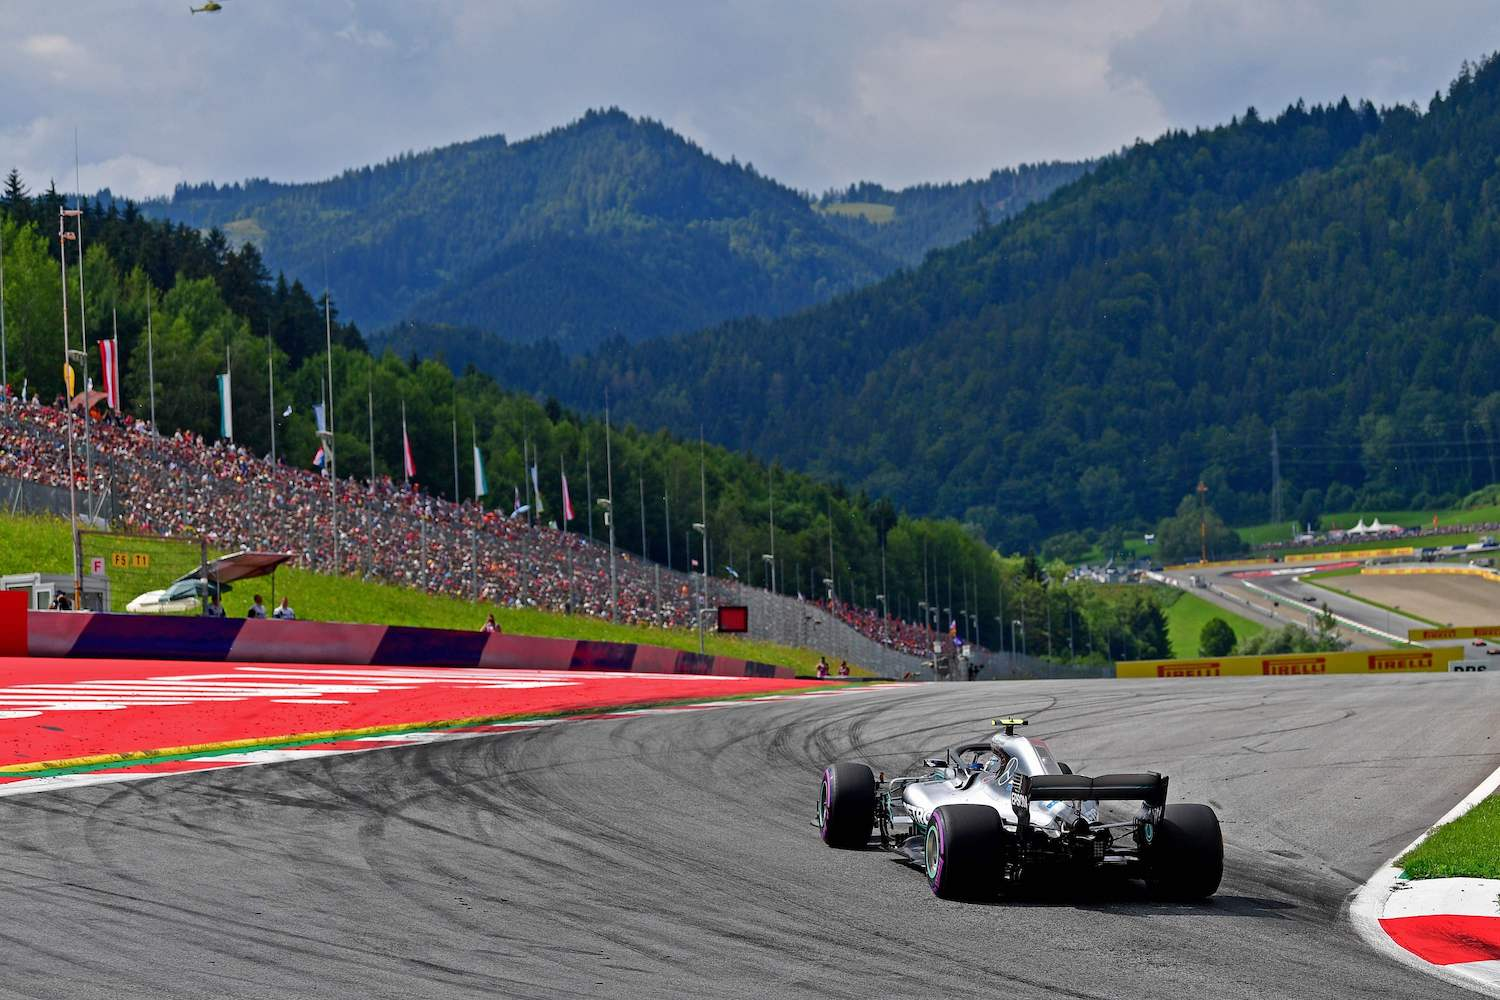 Mercedes driver Valtteri Bottas steers his car during a qualifying session for the Austrian Grand Prix in Spielberg in 2018. (AFP File Photo)